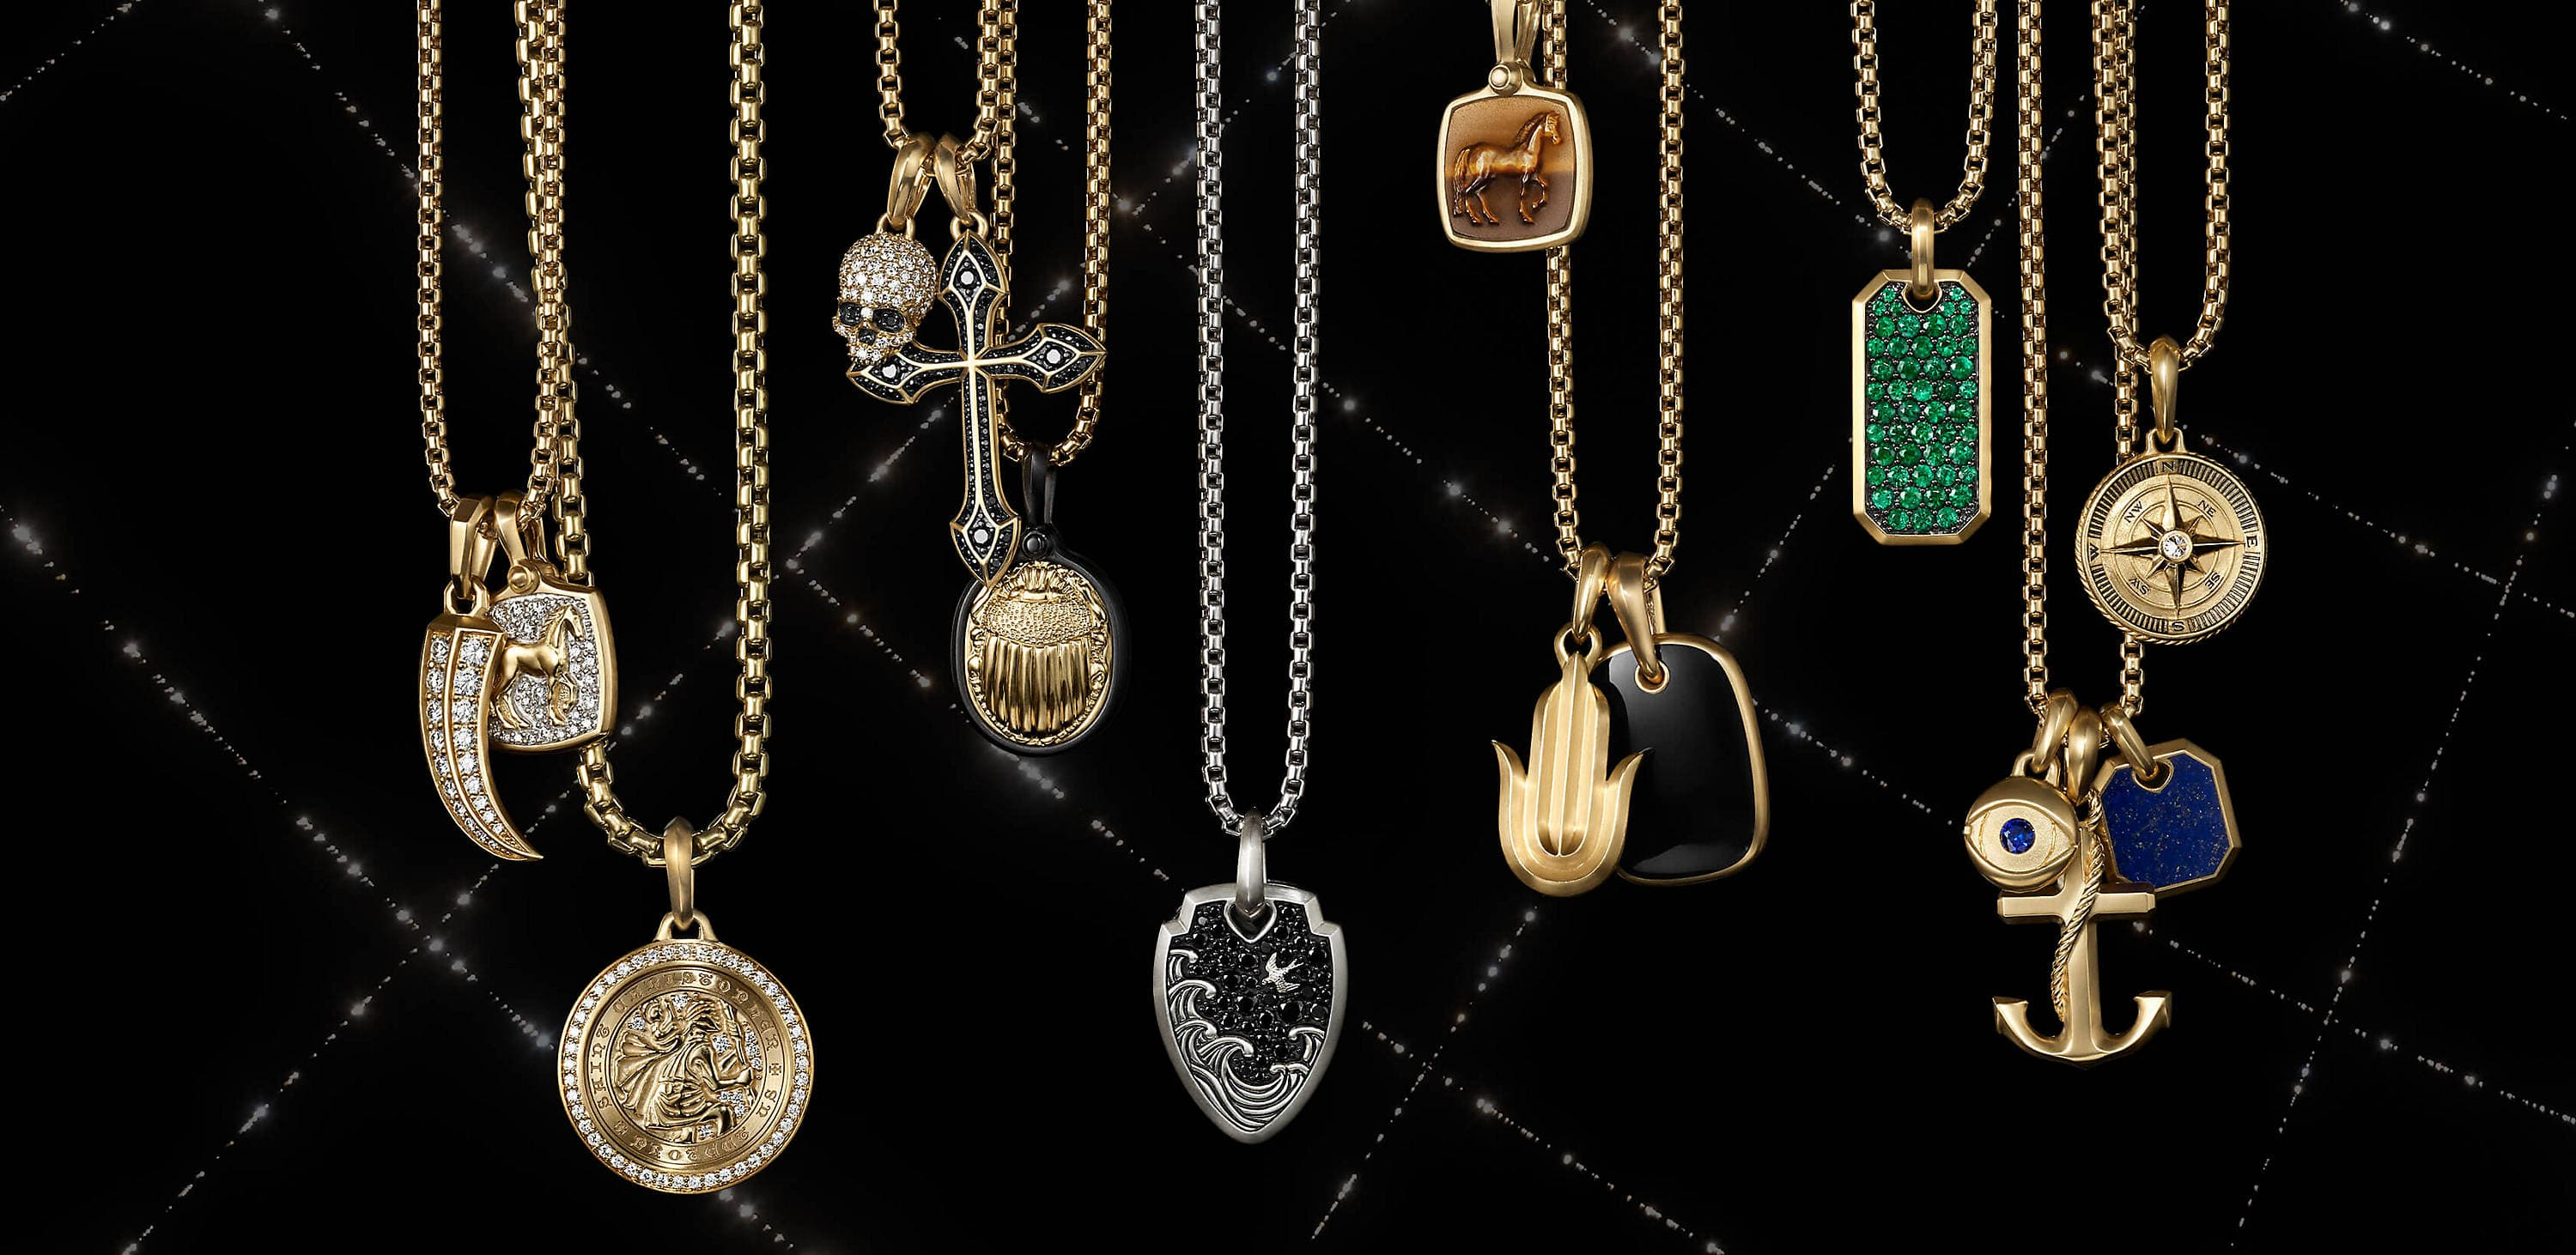 A color photograph shows 15 David Yurman amulet pendants strung on six box-chain necklaces suspended in front of a black background with white latitude and longitude lines. The men's pendants and necklaces are crafted from sterling silver or 18K yellow gold with or without pavé diamonds and an array of colored gemstones. The amulets come in various shapes such as a dog tag, horn, dagger, cross, anchor or depict a multitude of images such as a horse, compass rose, Hamsa hand, St. Christopher or a scarab.